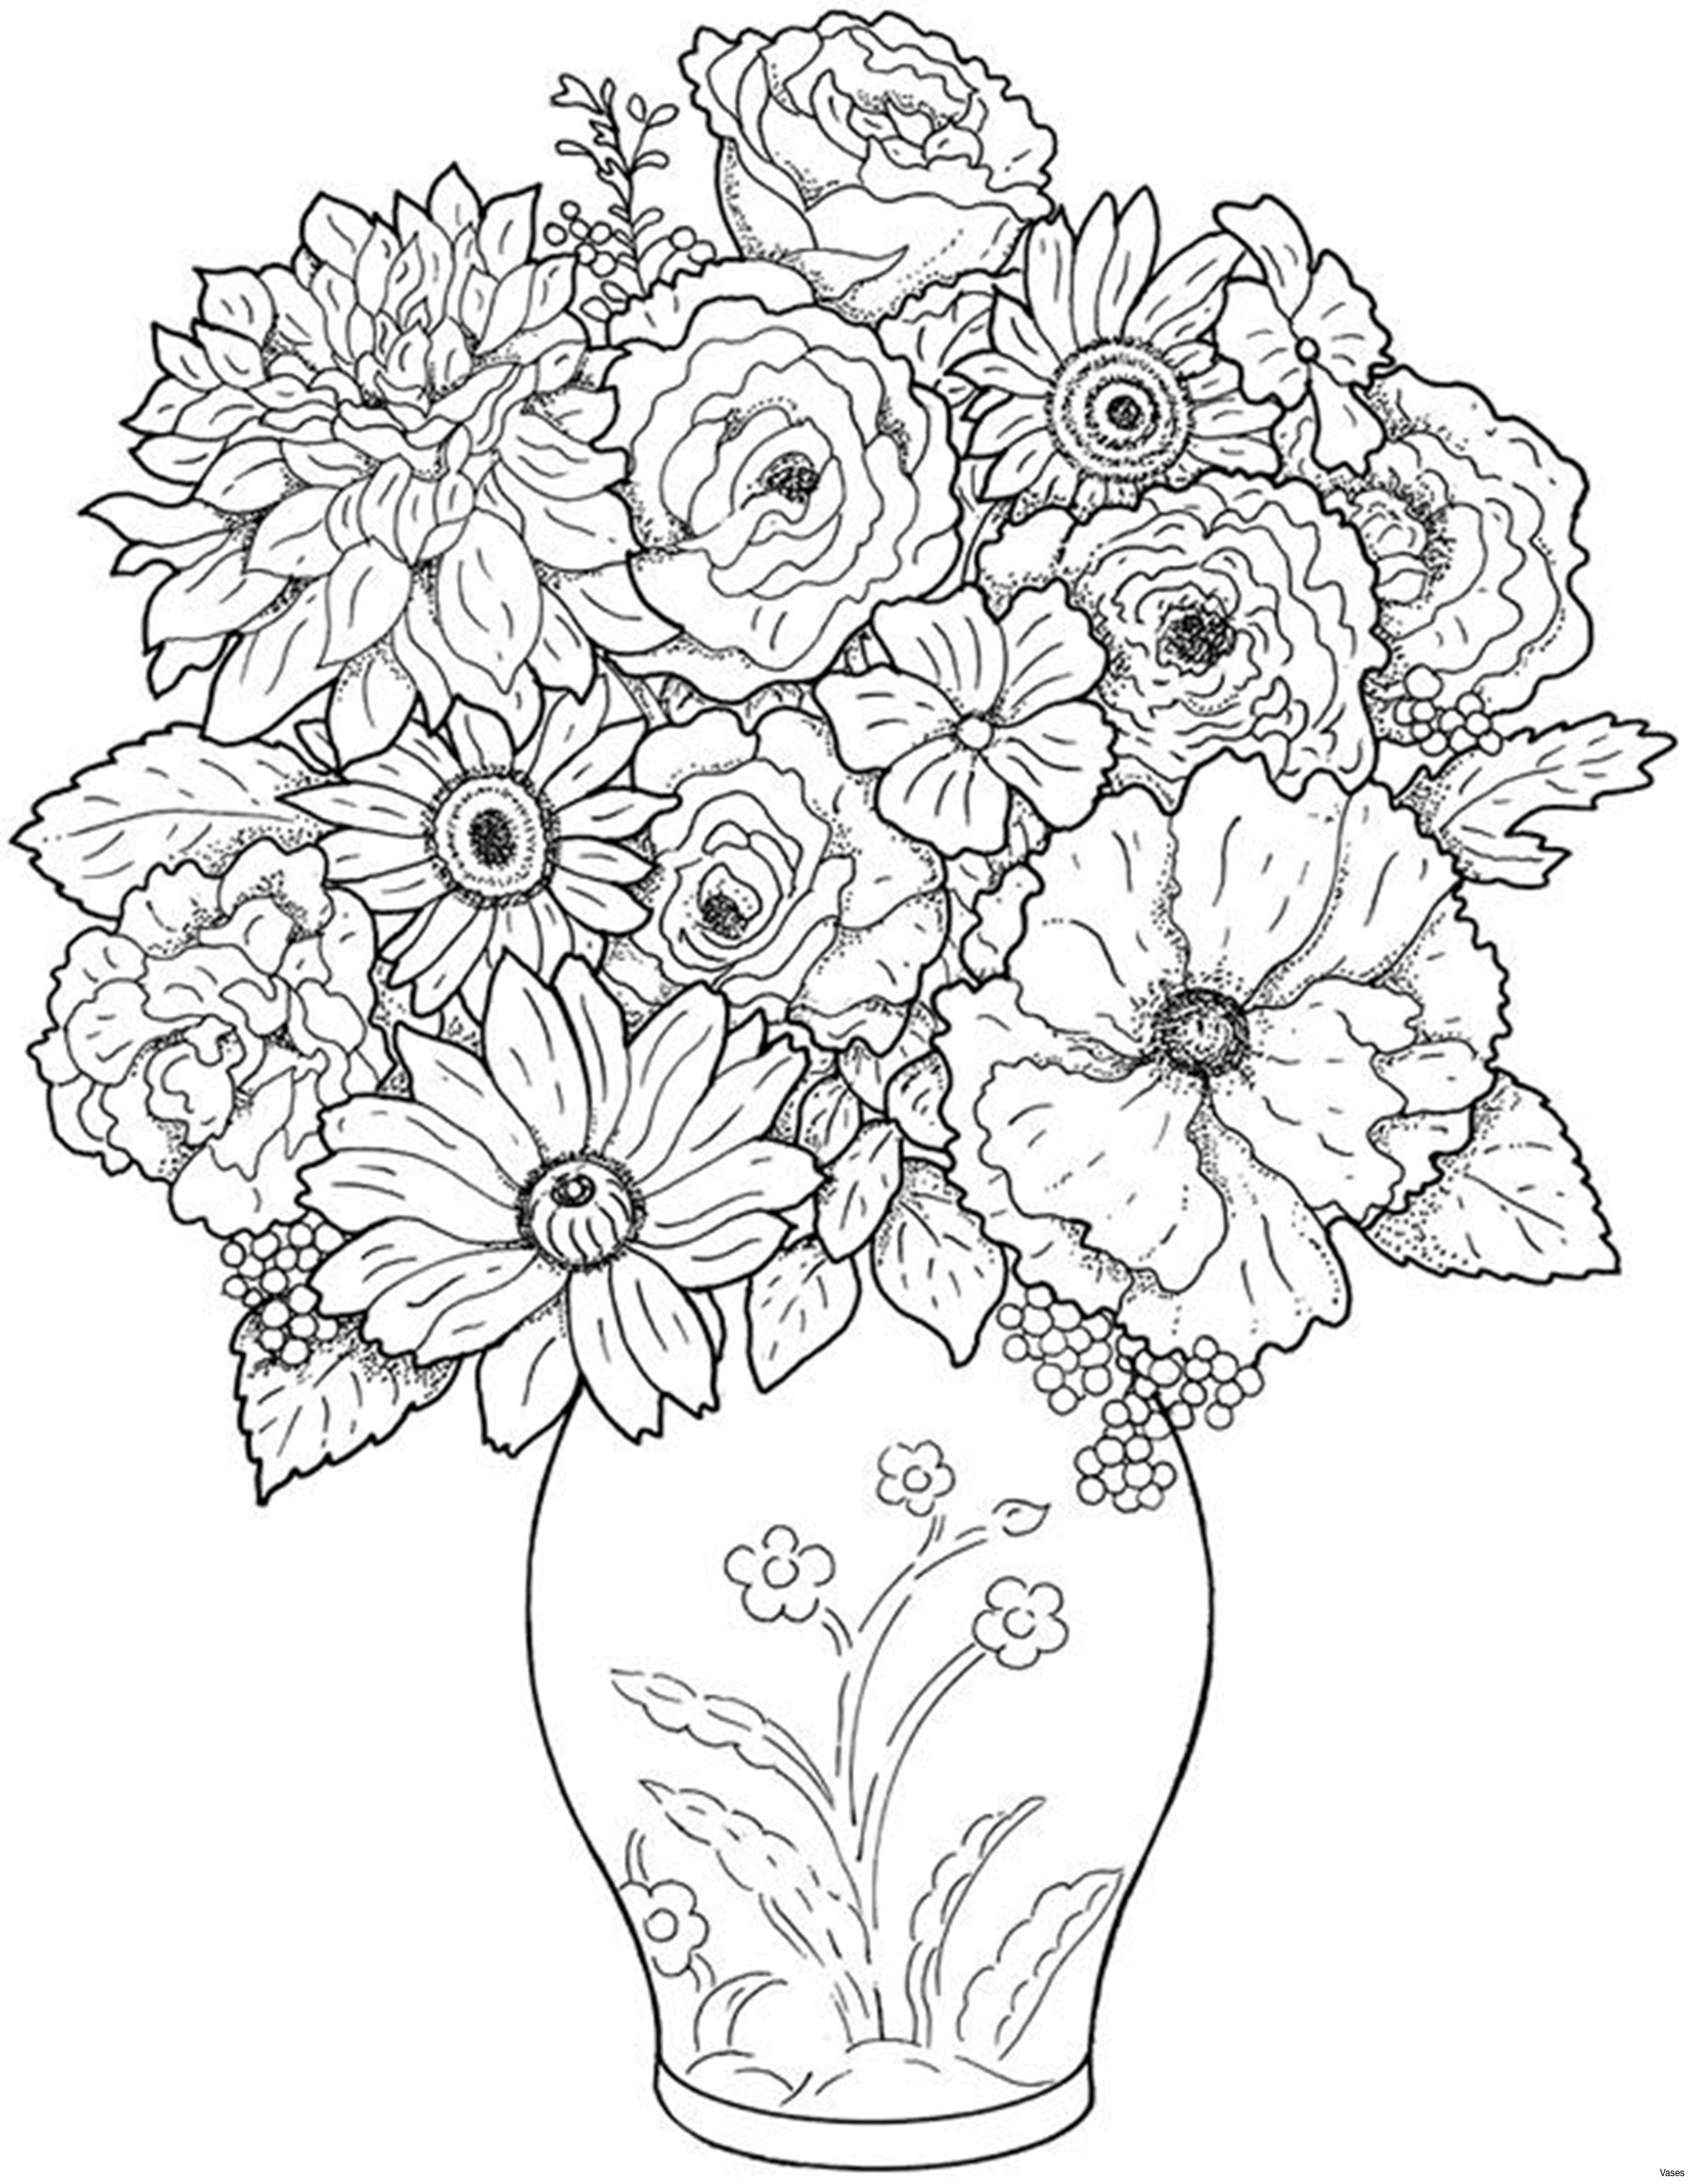 custom flower vase of coloring pages of flowers in a vase free coloring library inside coloring vase with flowers coloring patterns coloring pages library